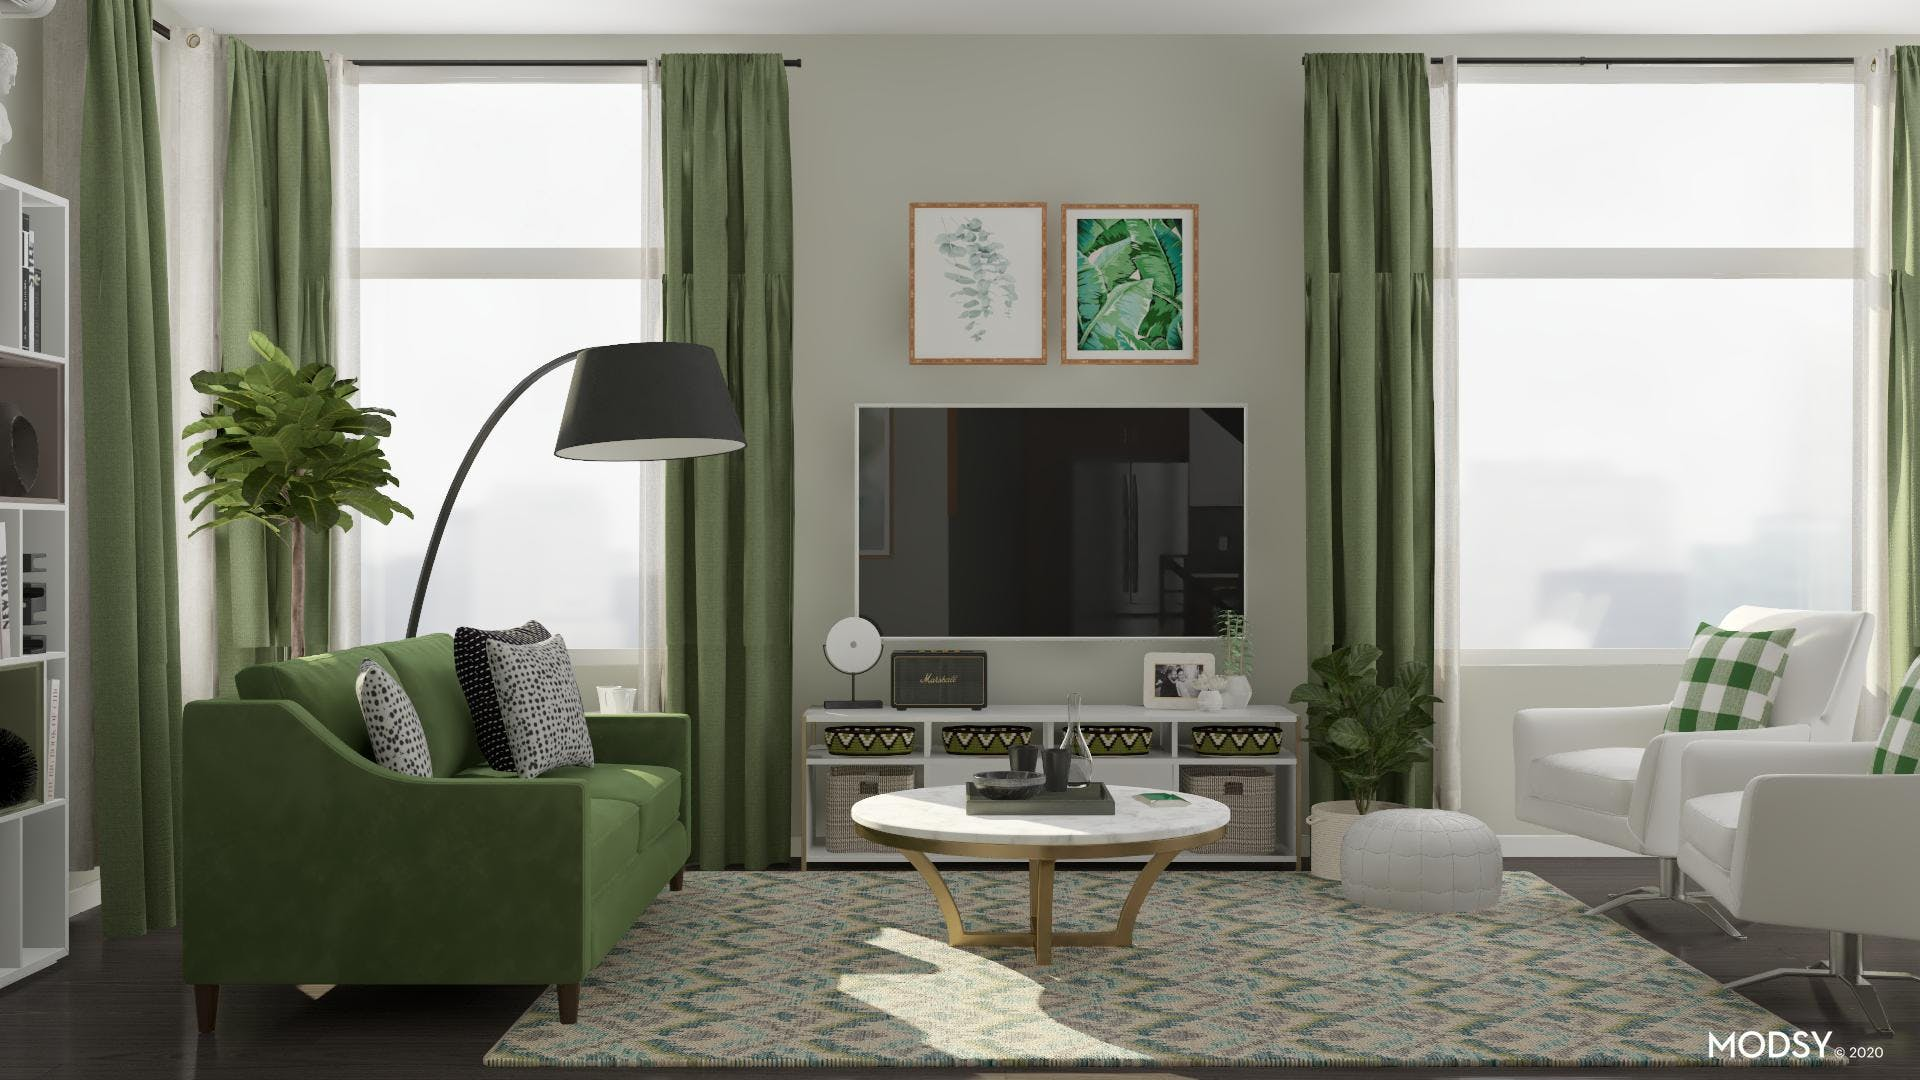 Tranquility in a Modern Living Room Space